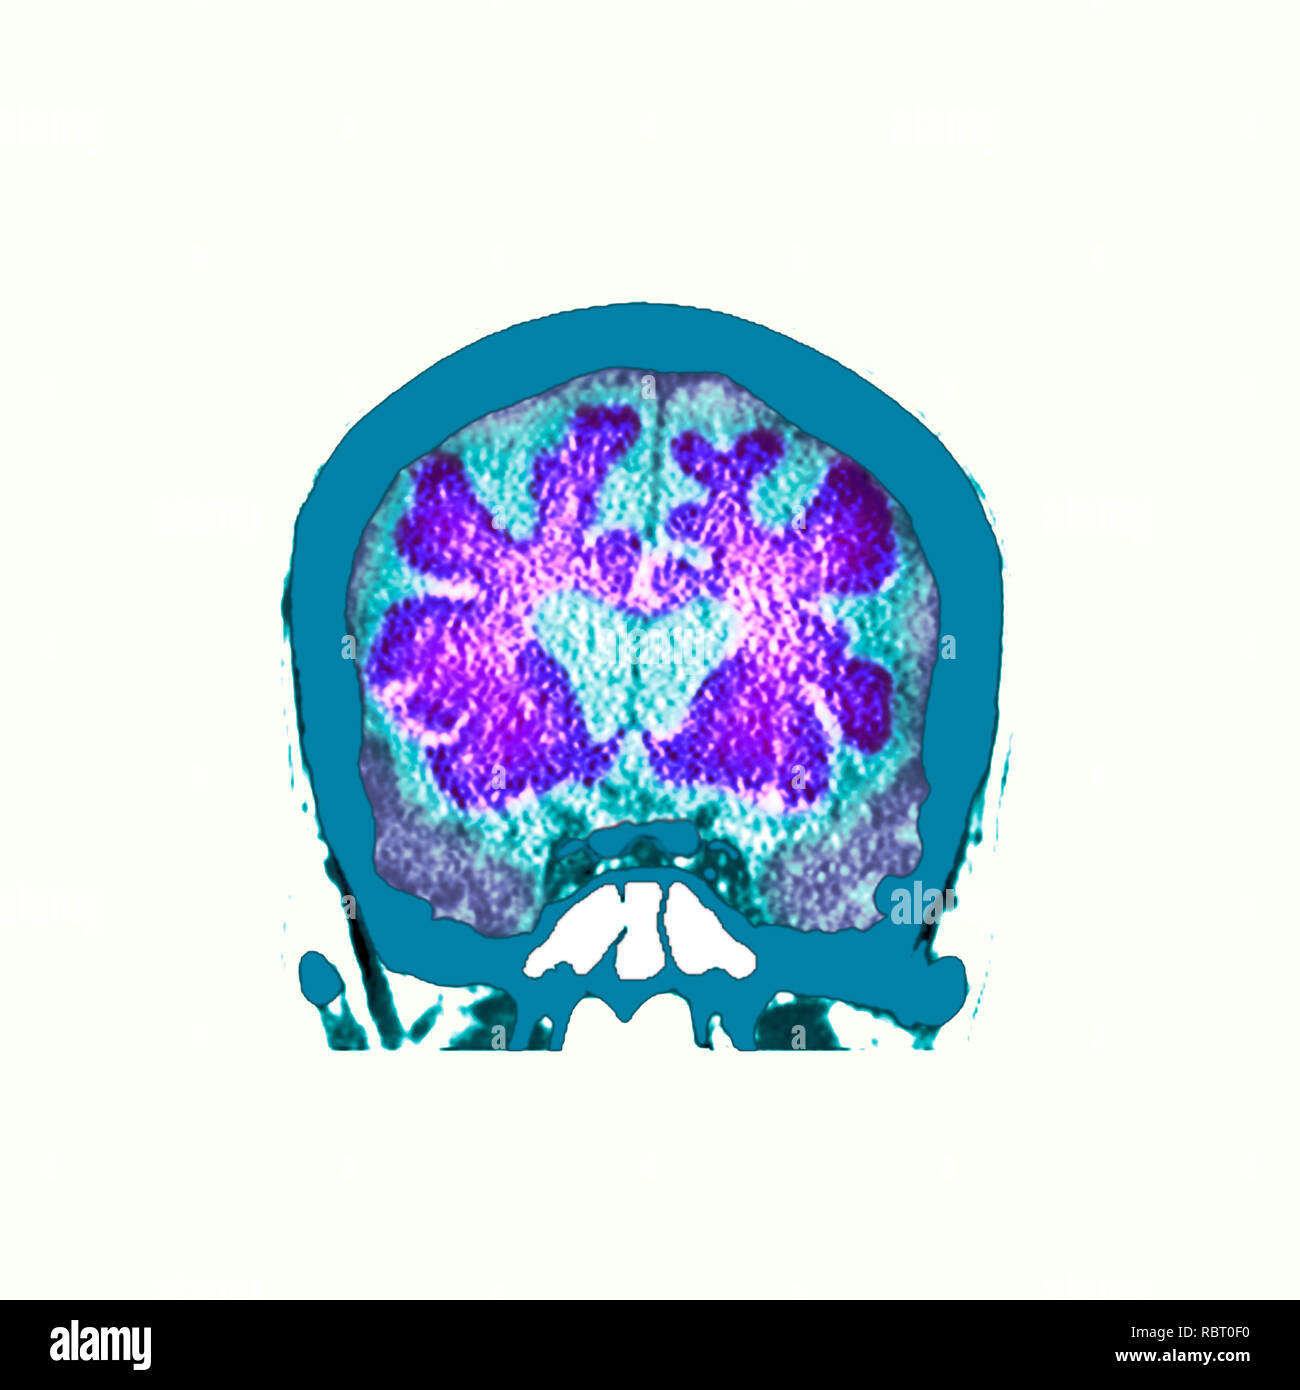 Brain in dementia. Coloured computed tomography (CT) scan of a section through the brain of an 89-year-old male patient with dementia. The brain has atrophied (shrunk), shown by the enlarged central ventricles and deep indentations around the brain's edges. - Stock Image